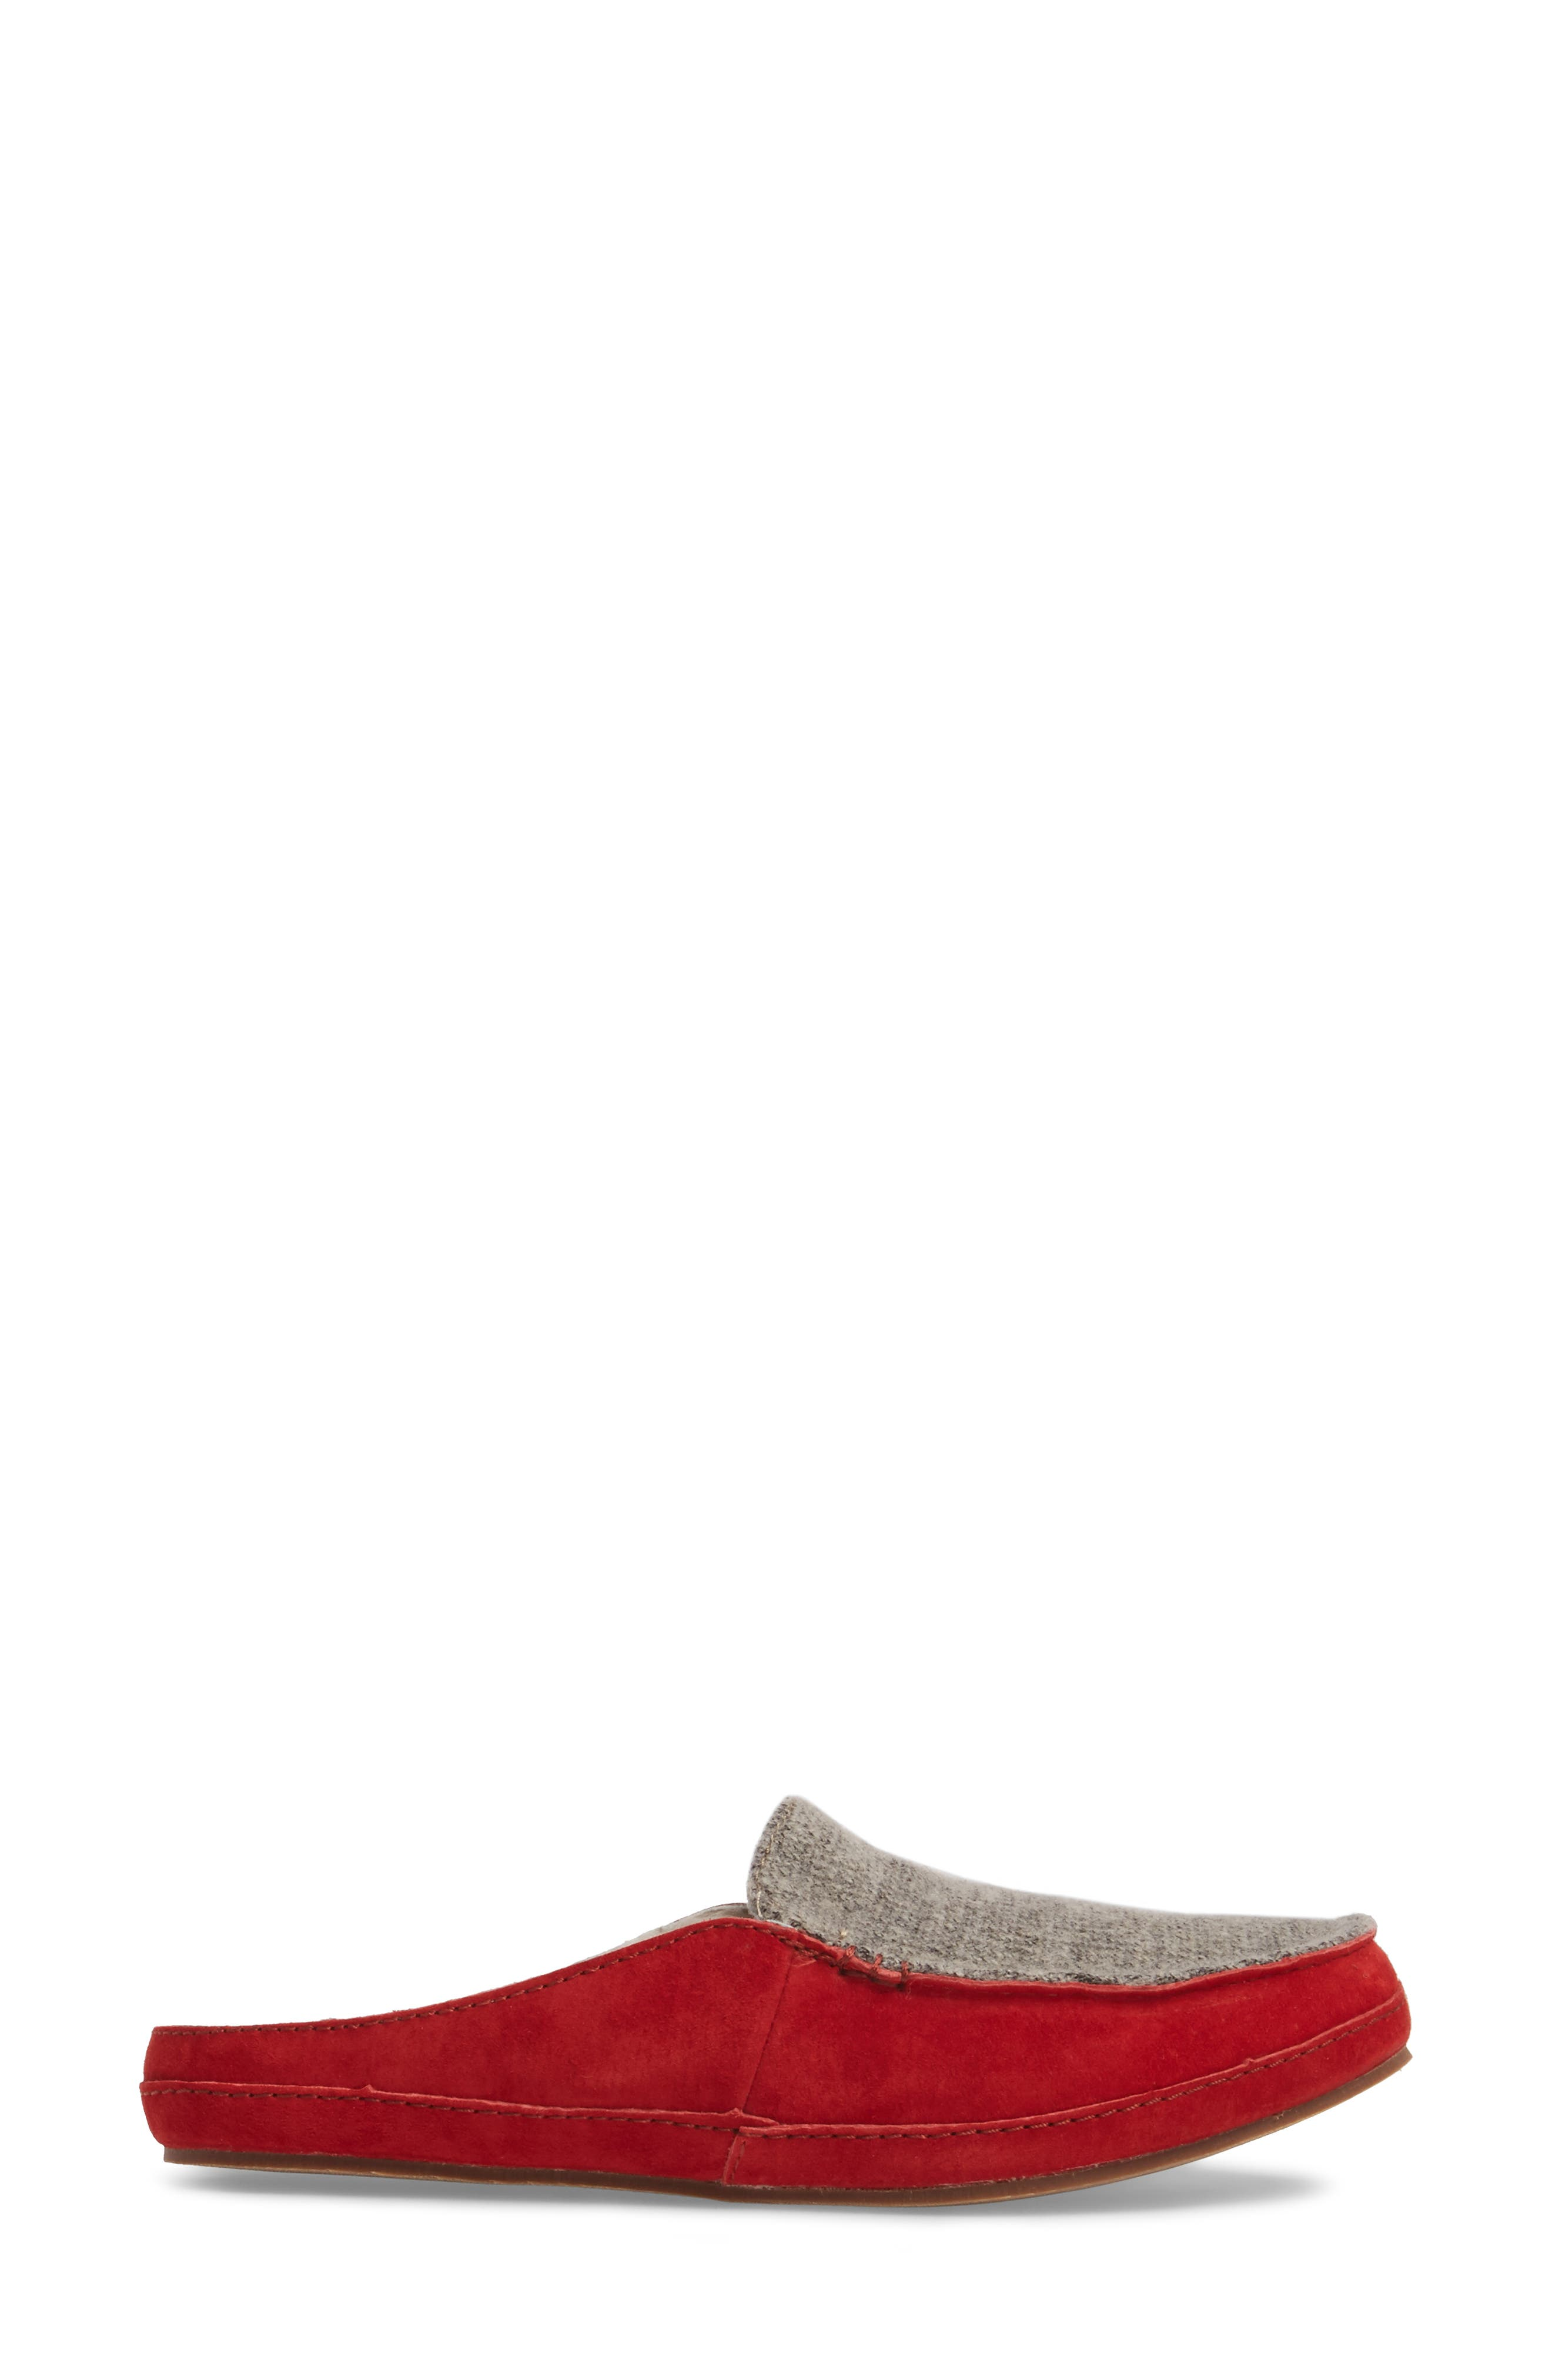 Alaula Genuine Shearling Lined Slipper,                             Alternate thumbnail 3, color,                             Cooler Grey/ Red Mud Leather